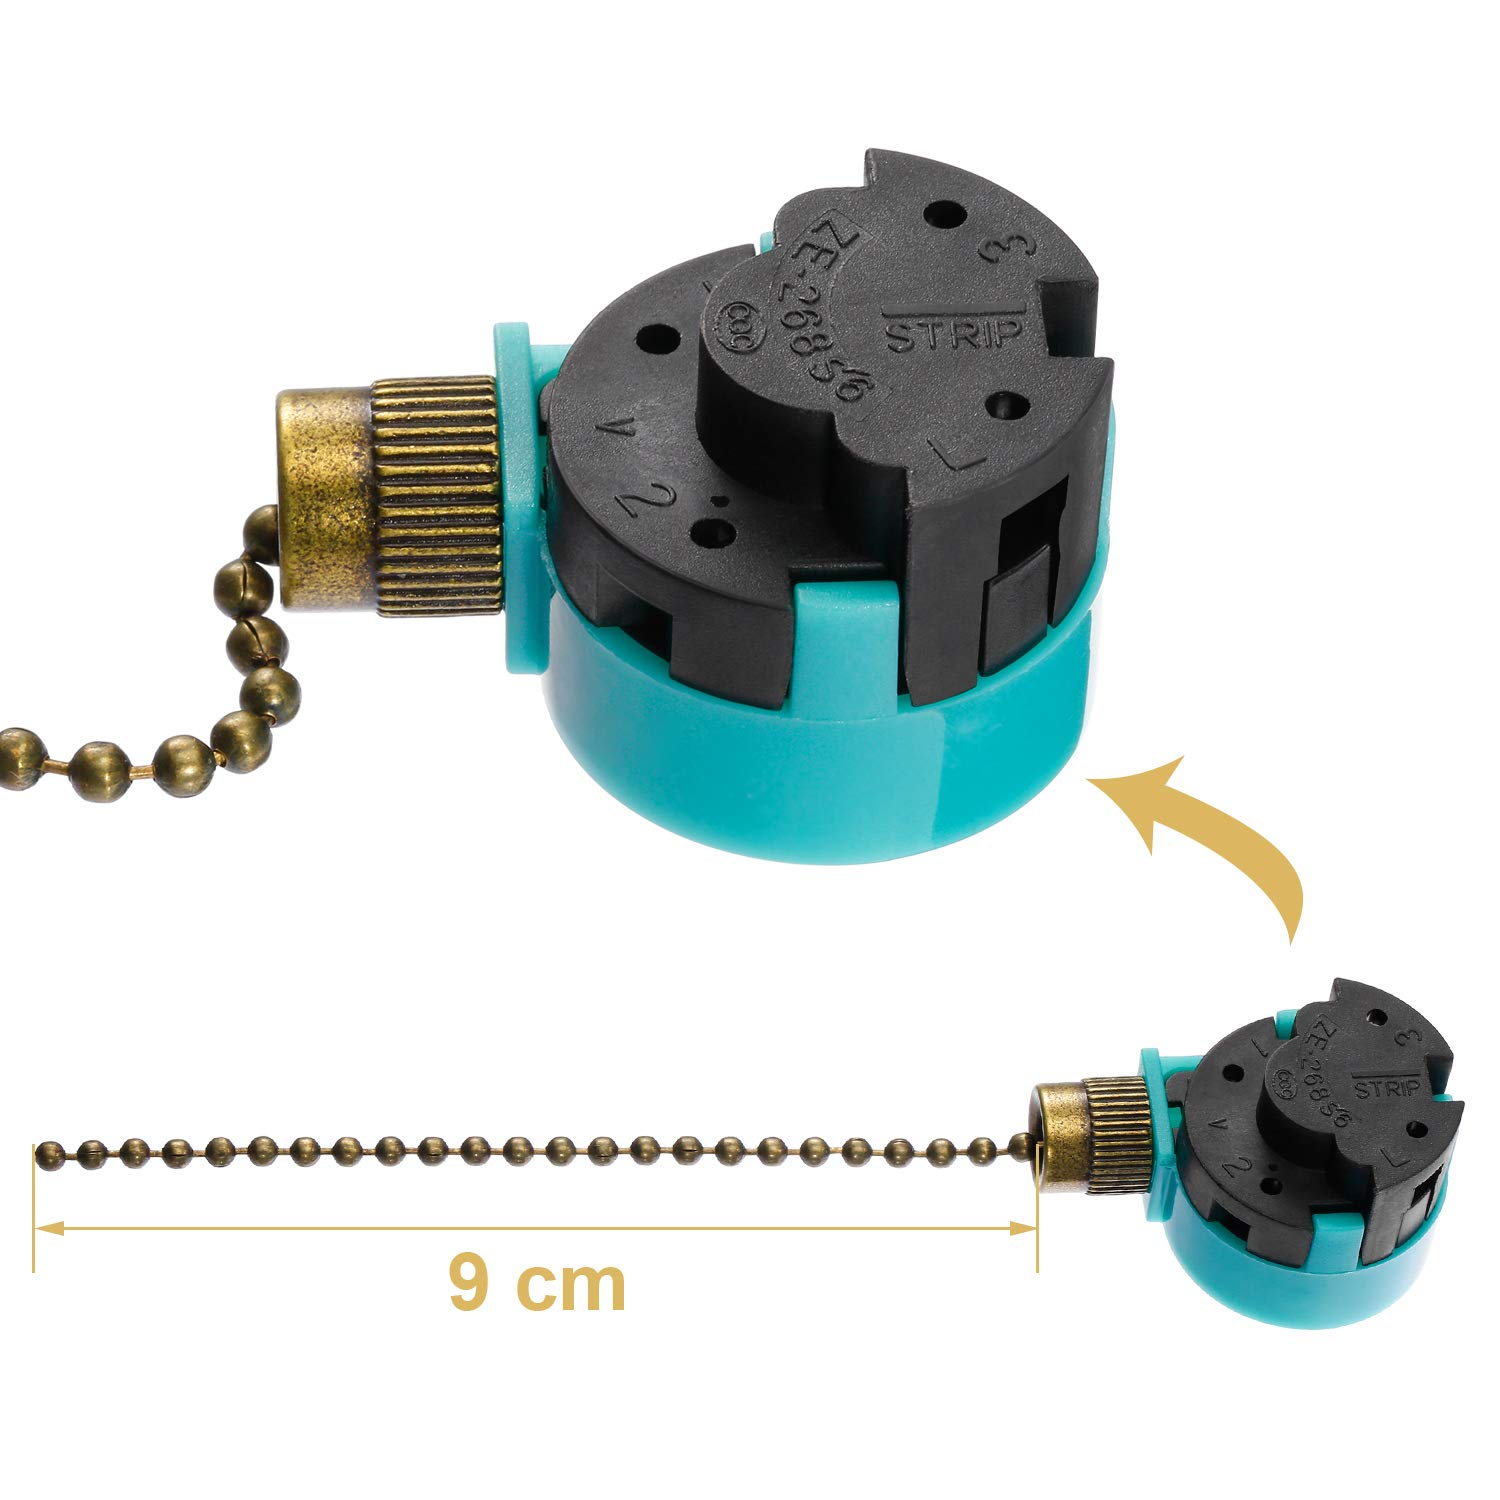 Jetec 2 Pack Ceiling Fan Switch 3 Speed ZE-268S6 and 10 Feet Beaded Pull Chain Extension with 10 Connectors for Ceiling Fans Lamps and Wall Lights Brass Pull Chain